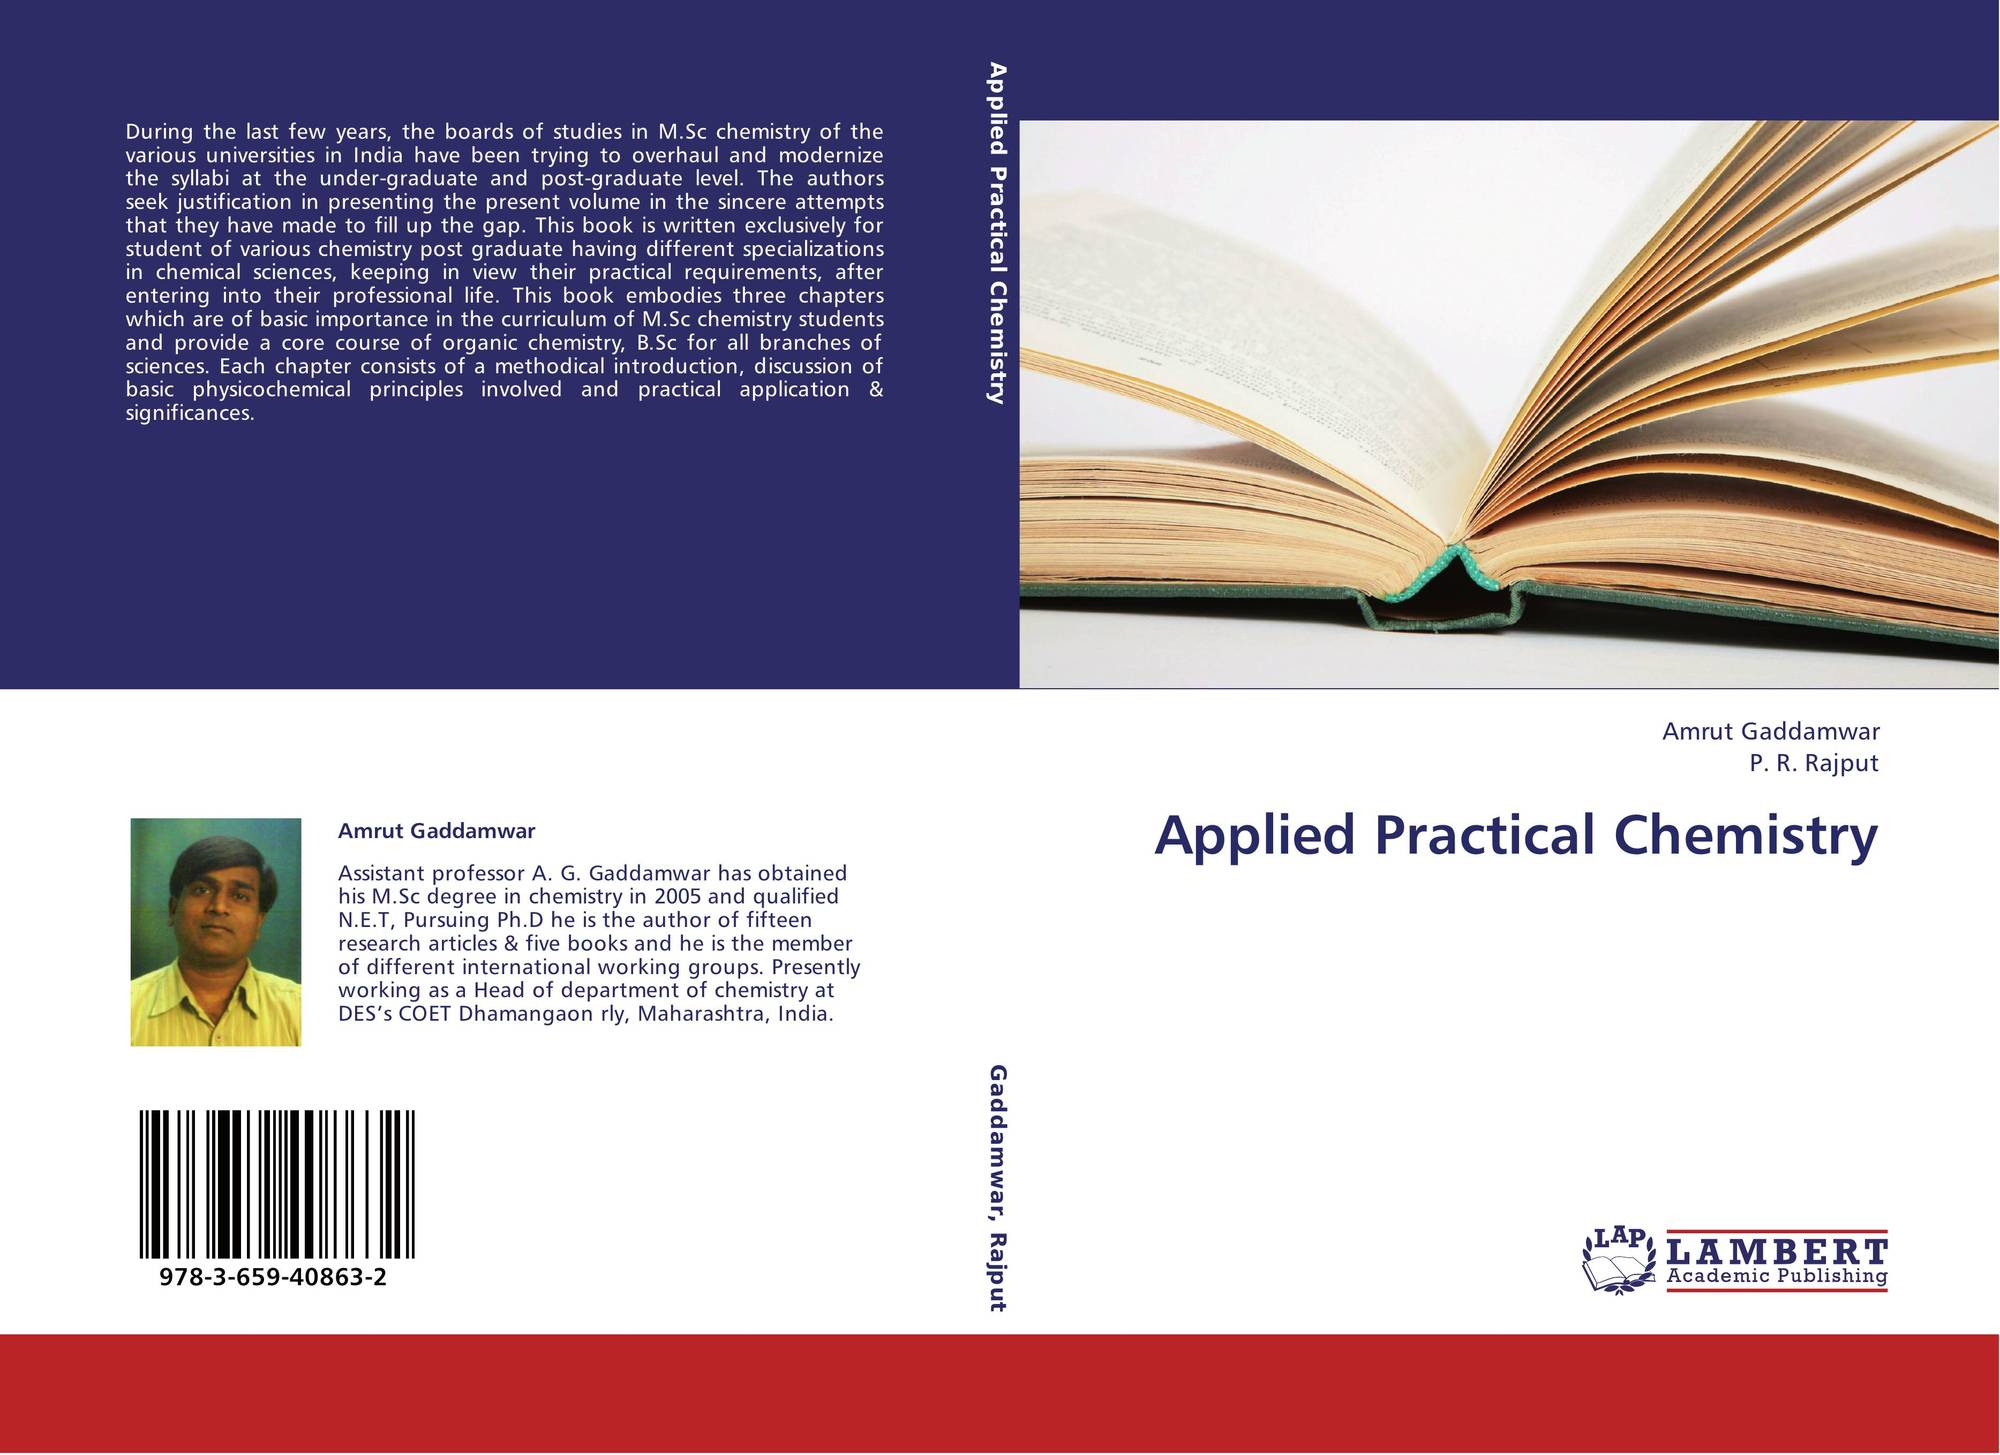 Applied Practical Chemistry, 978-3-659-40863-2, 3659408638